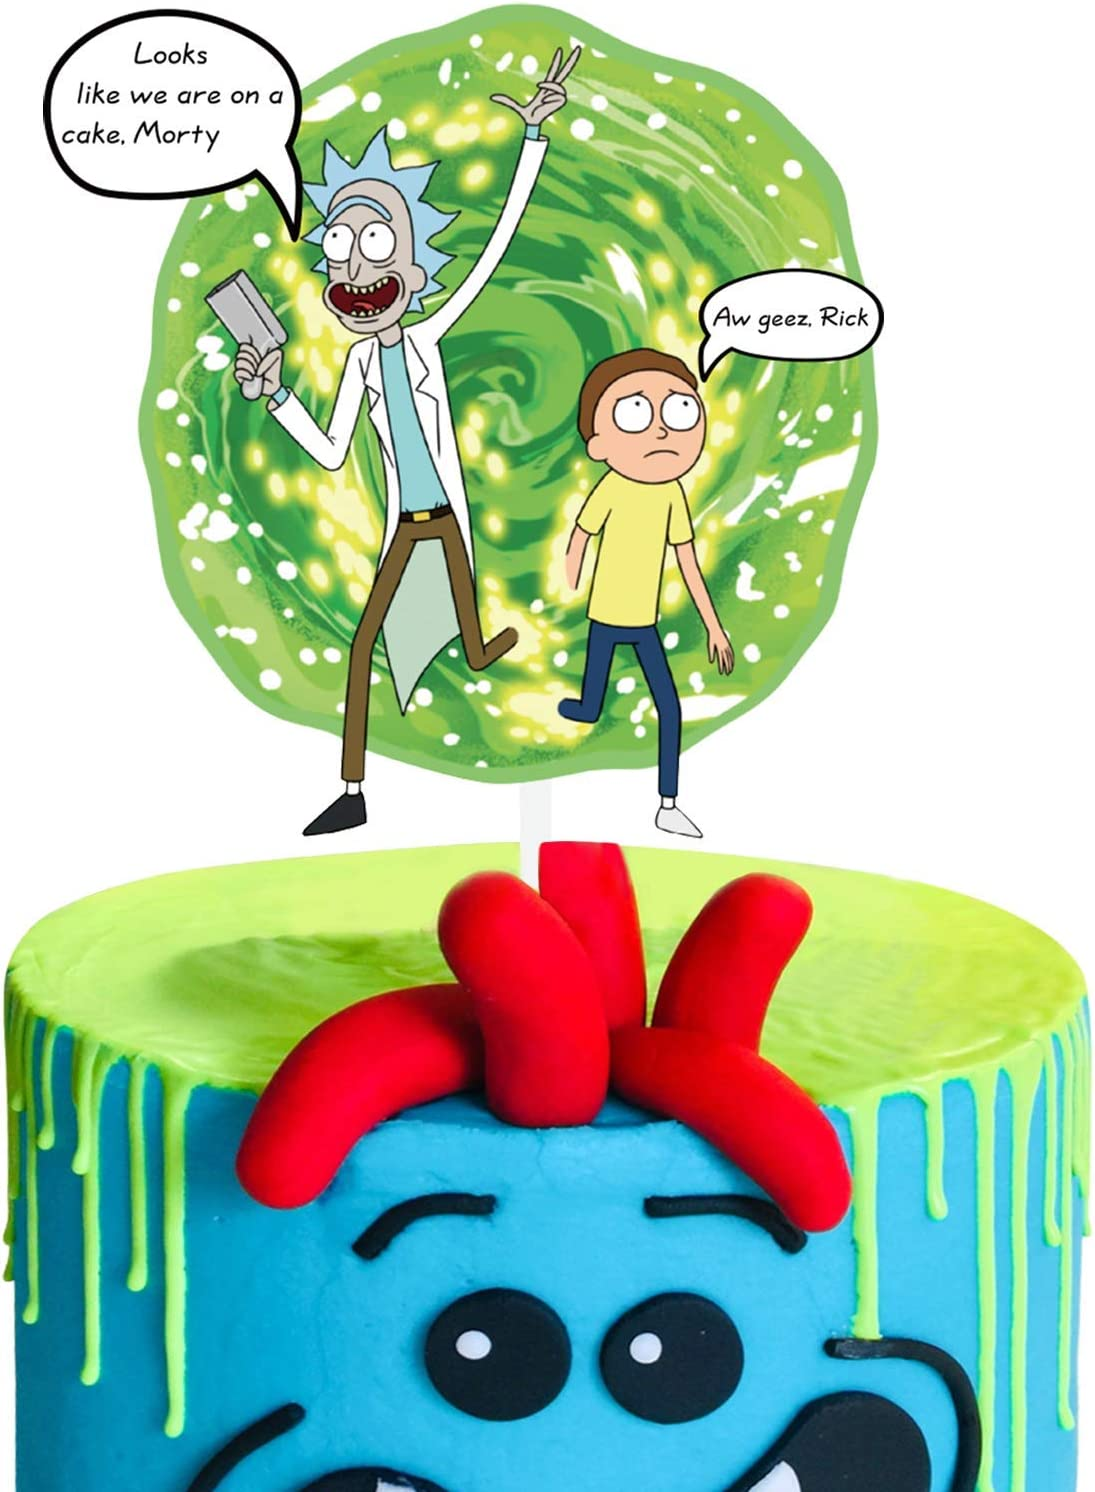 Acrylic Rick and Morty Happy Birthday Cake Topper Rick & Morty Portal Theme Cake Decor Birthday Party Animation Decoration Suppliers